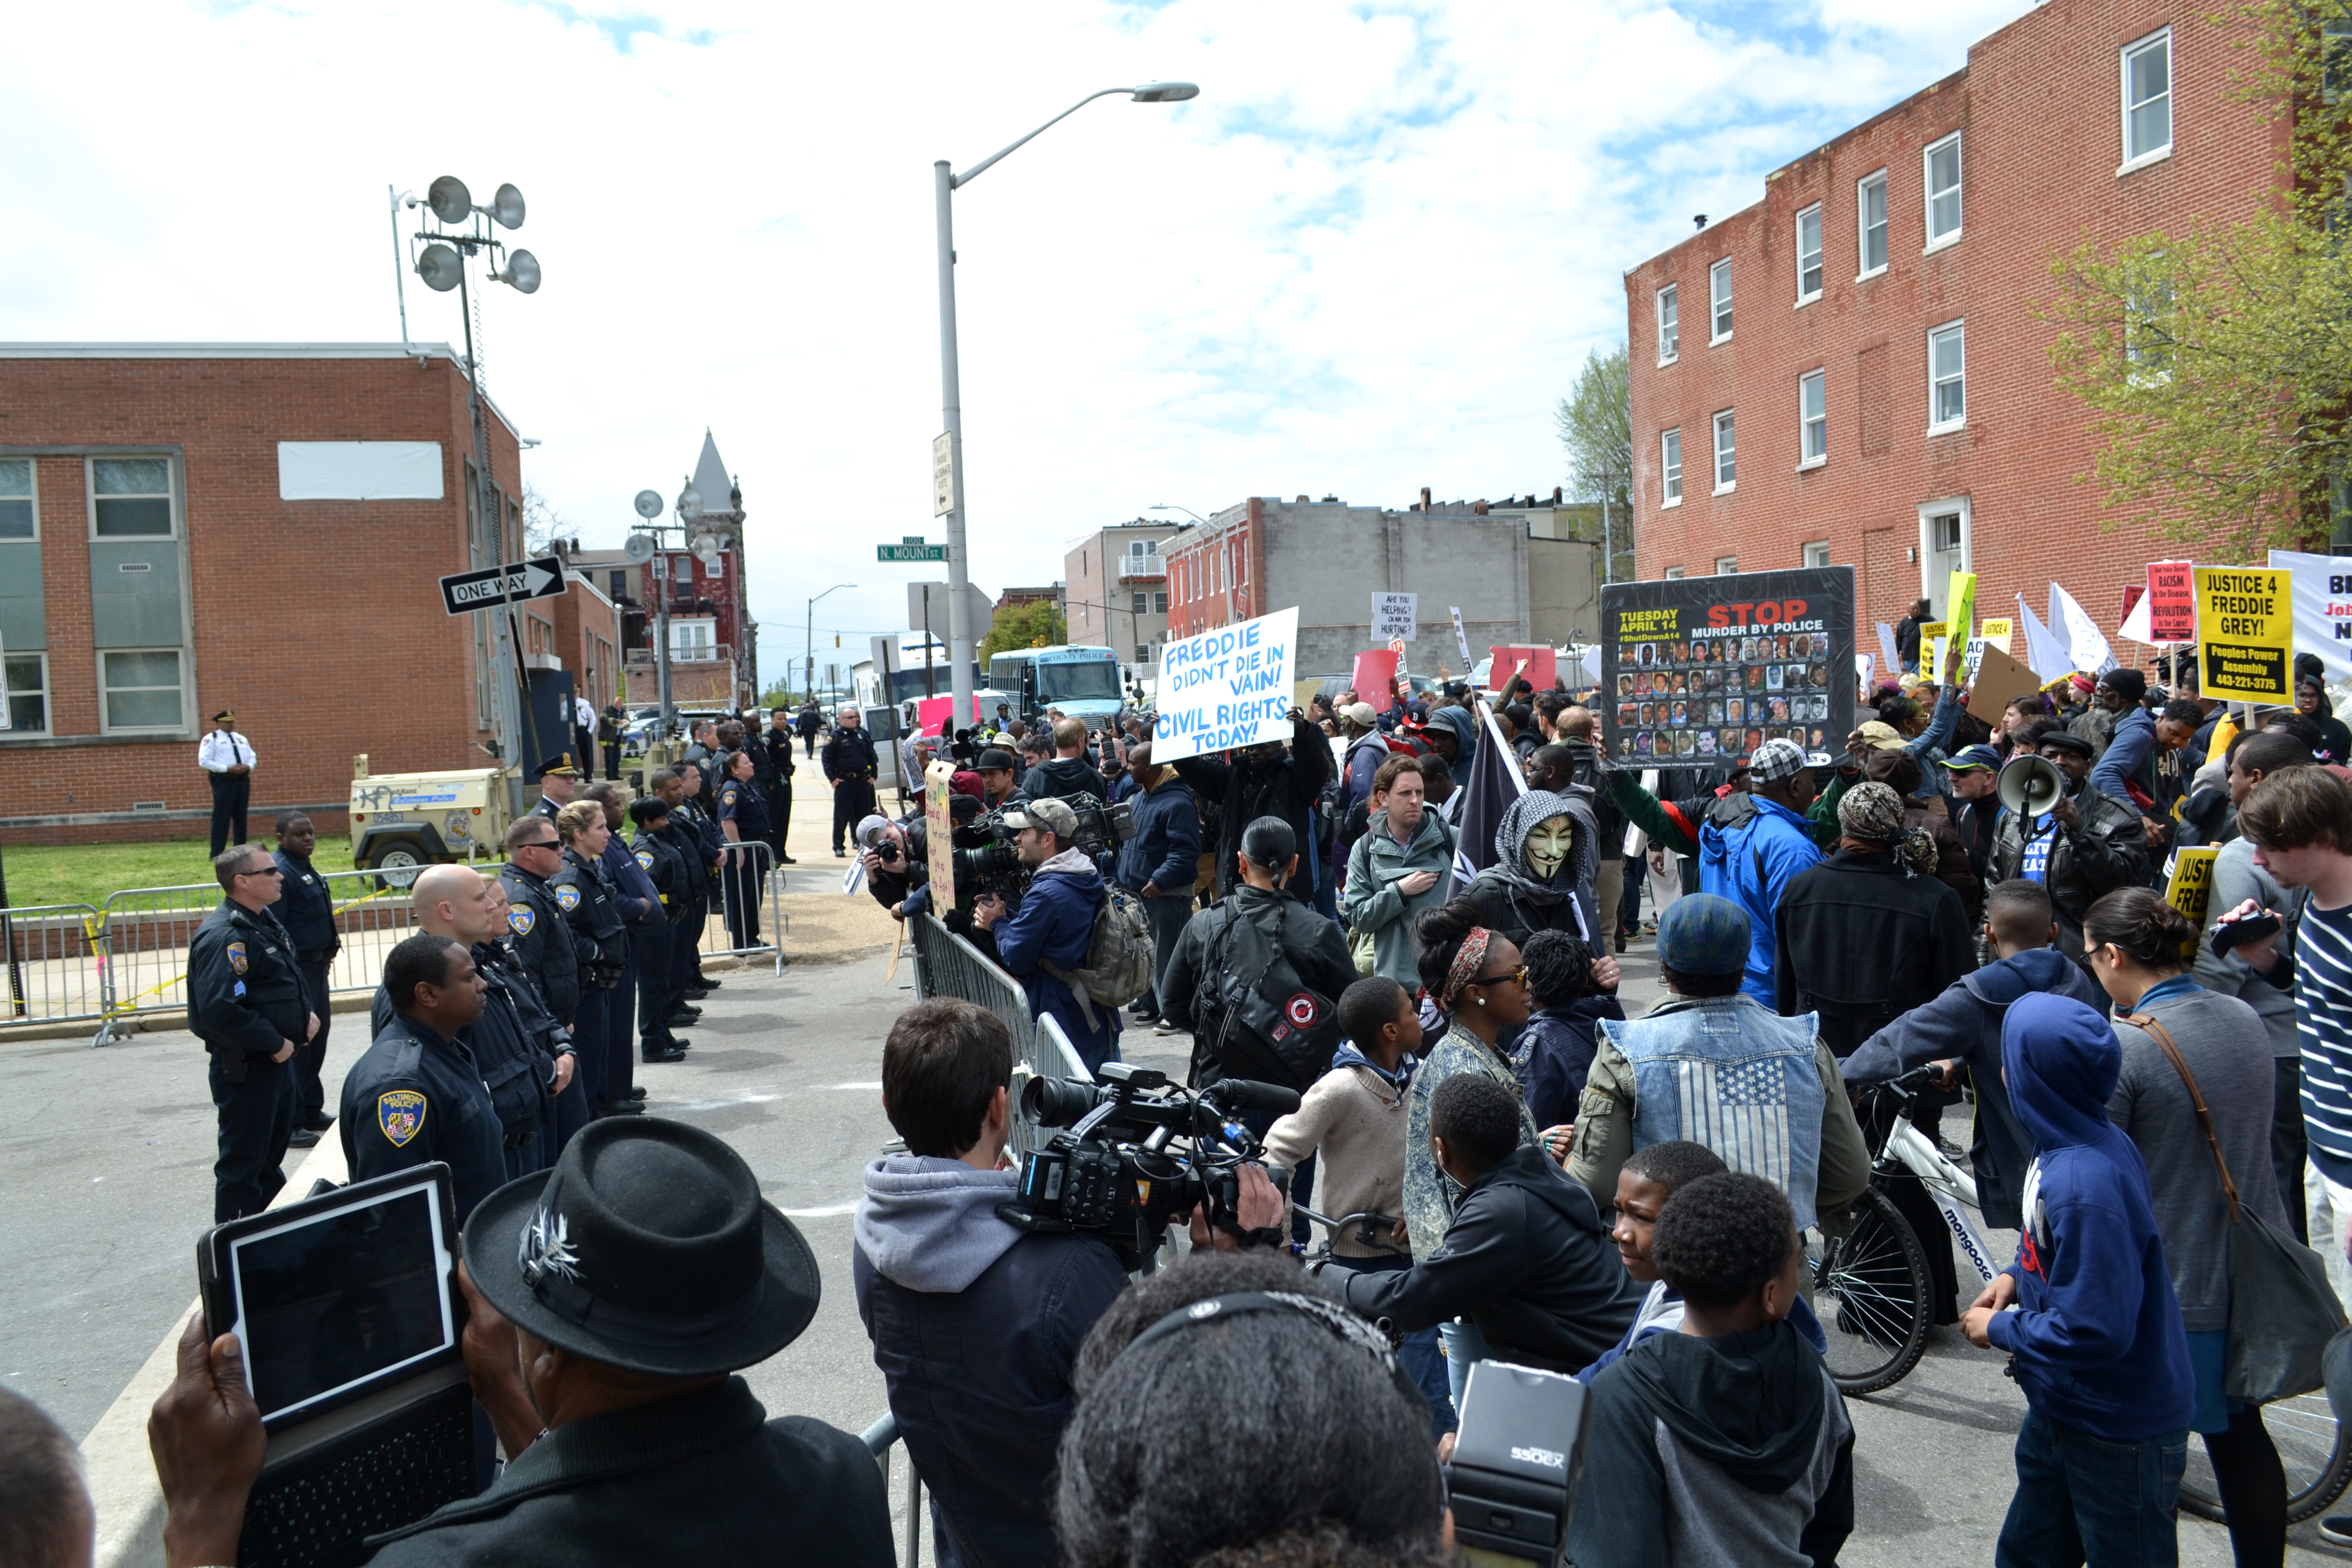 Protest at the Baltimore Police Department Western District building at N. Mount St. and Riggs Ave. / Source: WikiCommons by Veggie